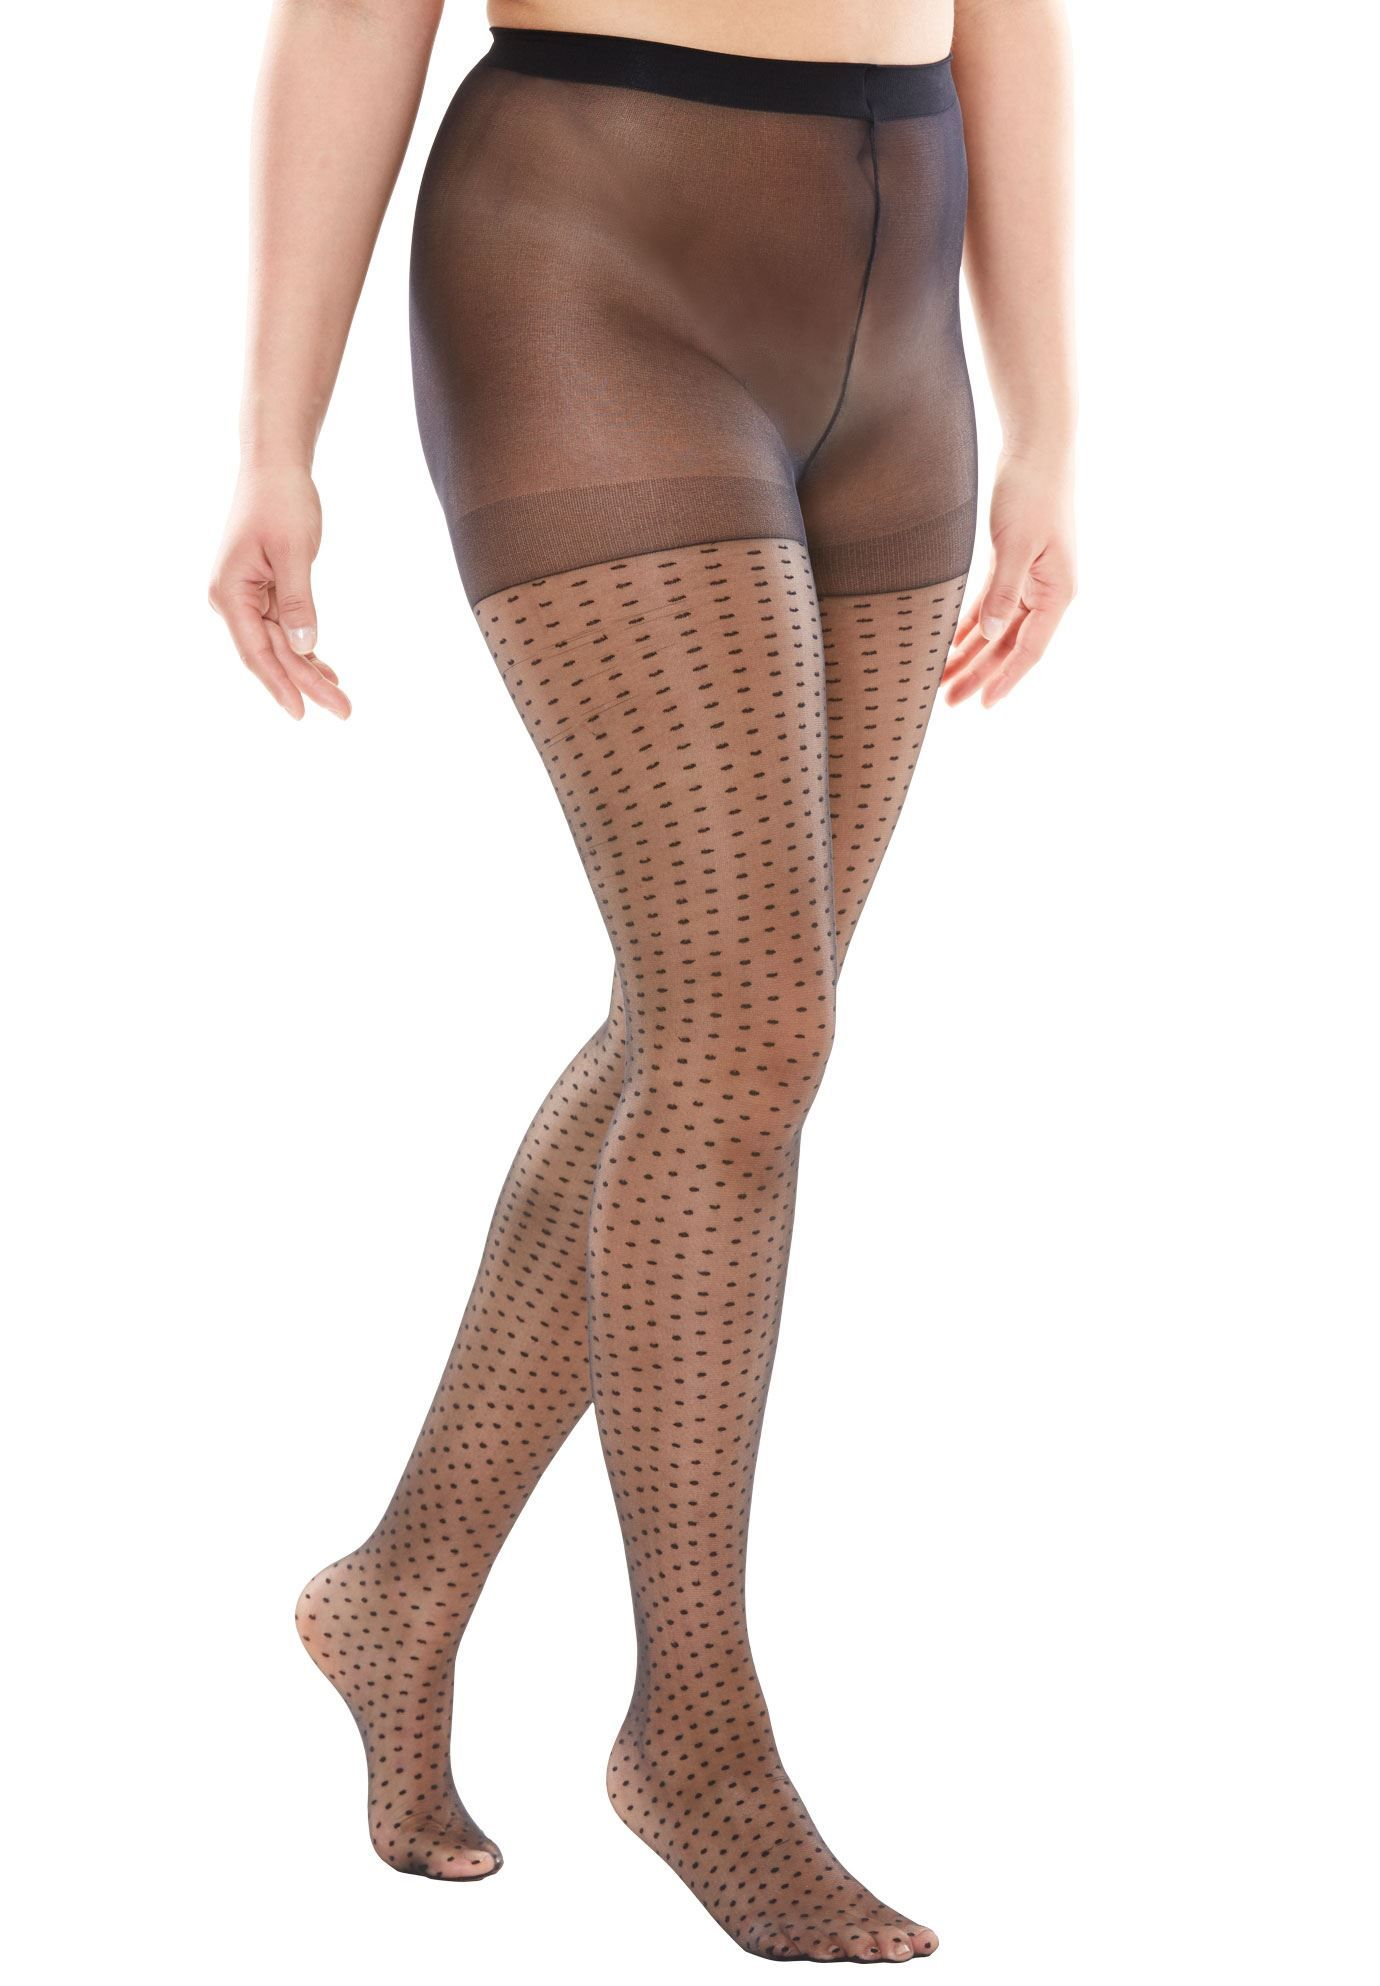 8b901bead27 2-Pack Pattern Hosiery by Comfort Choice - Women s Plus Size Clothing